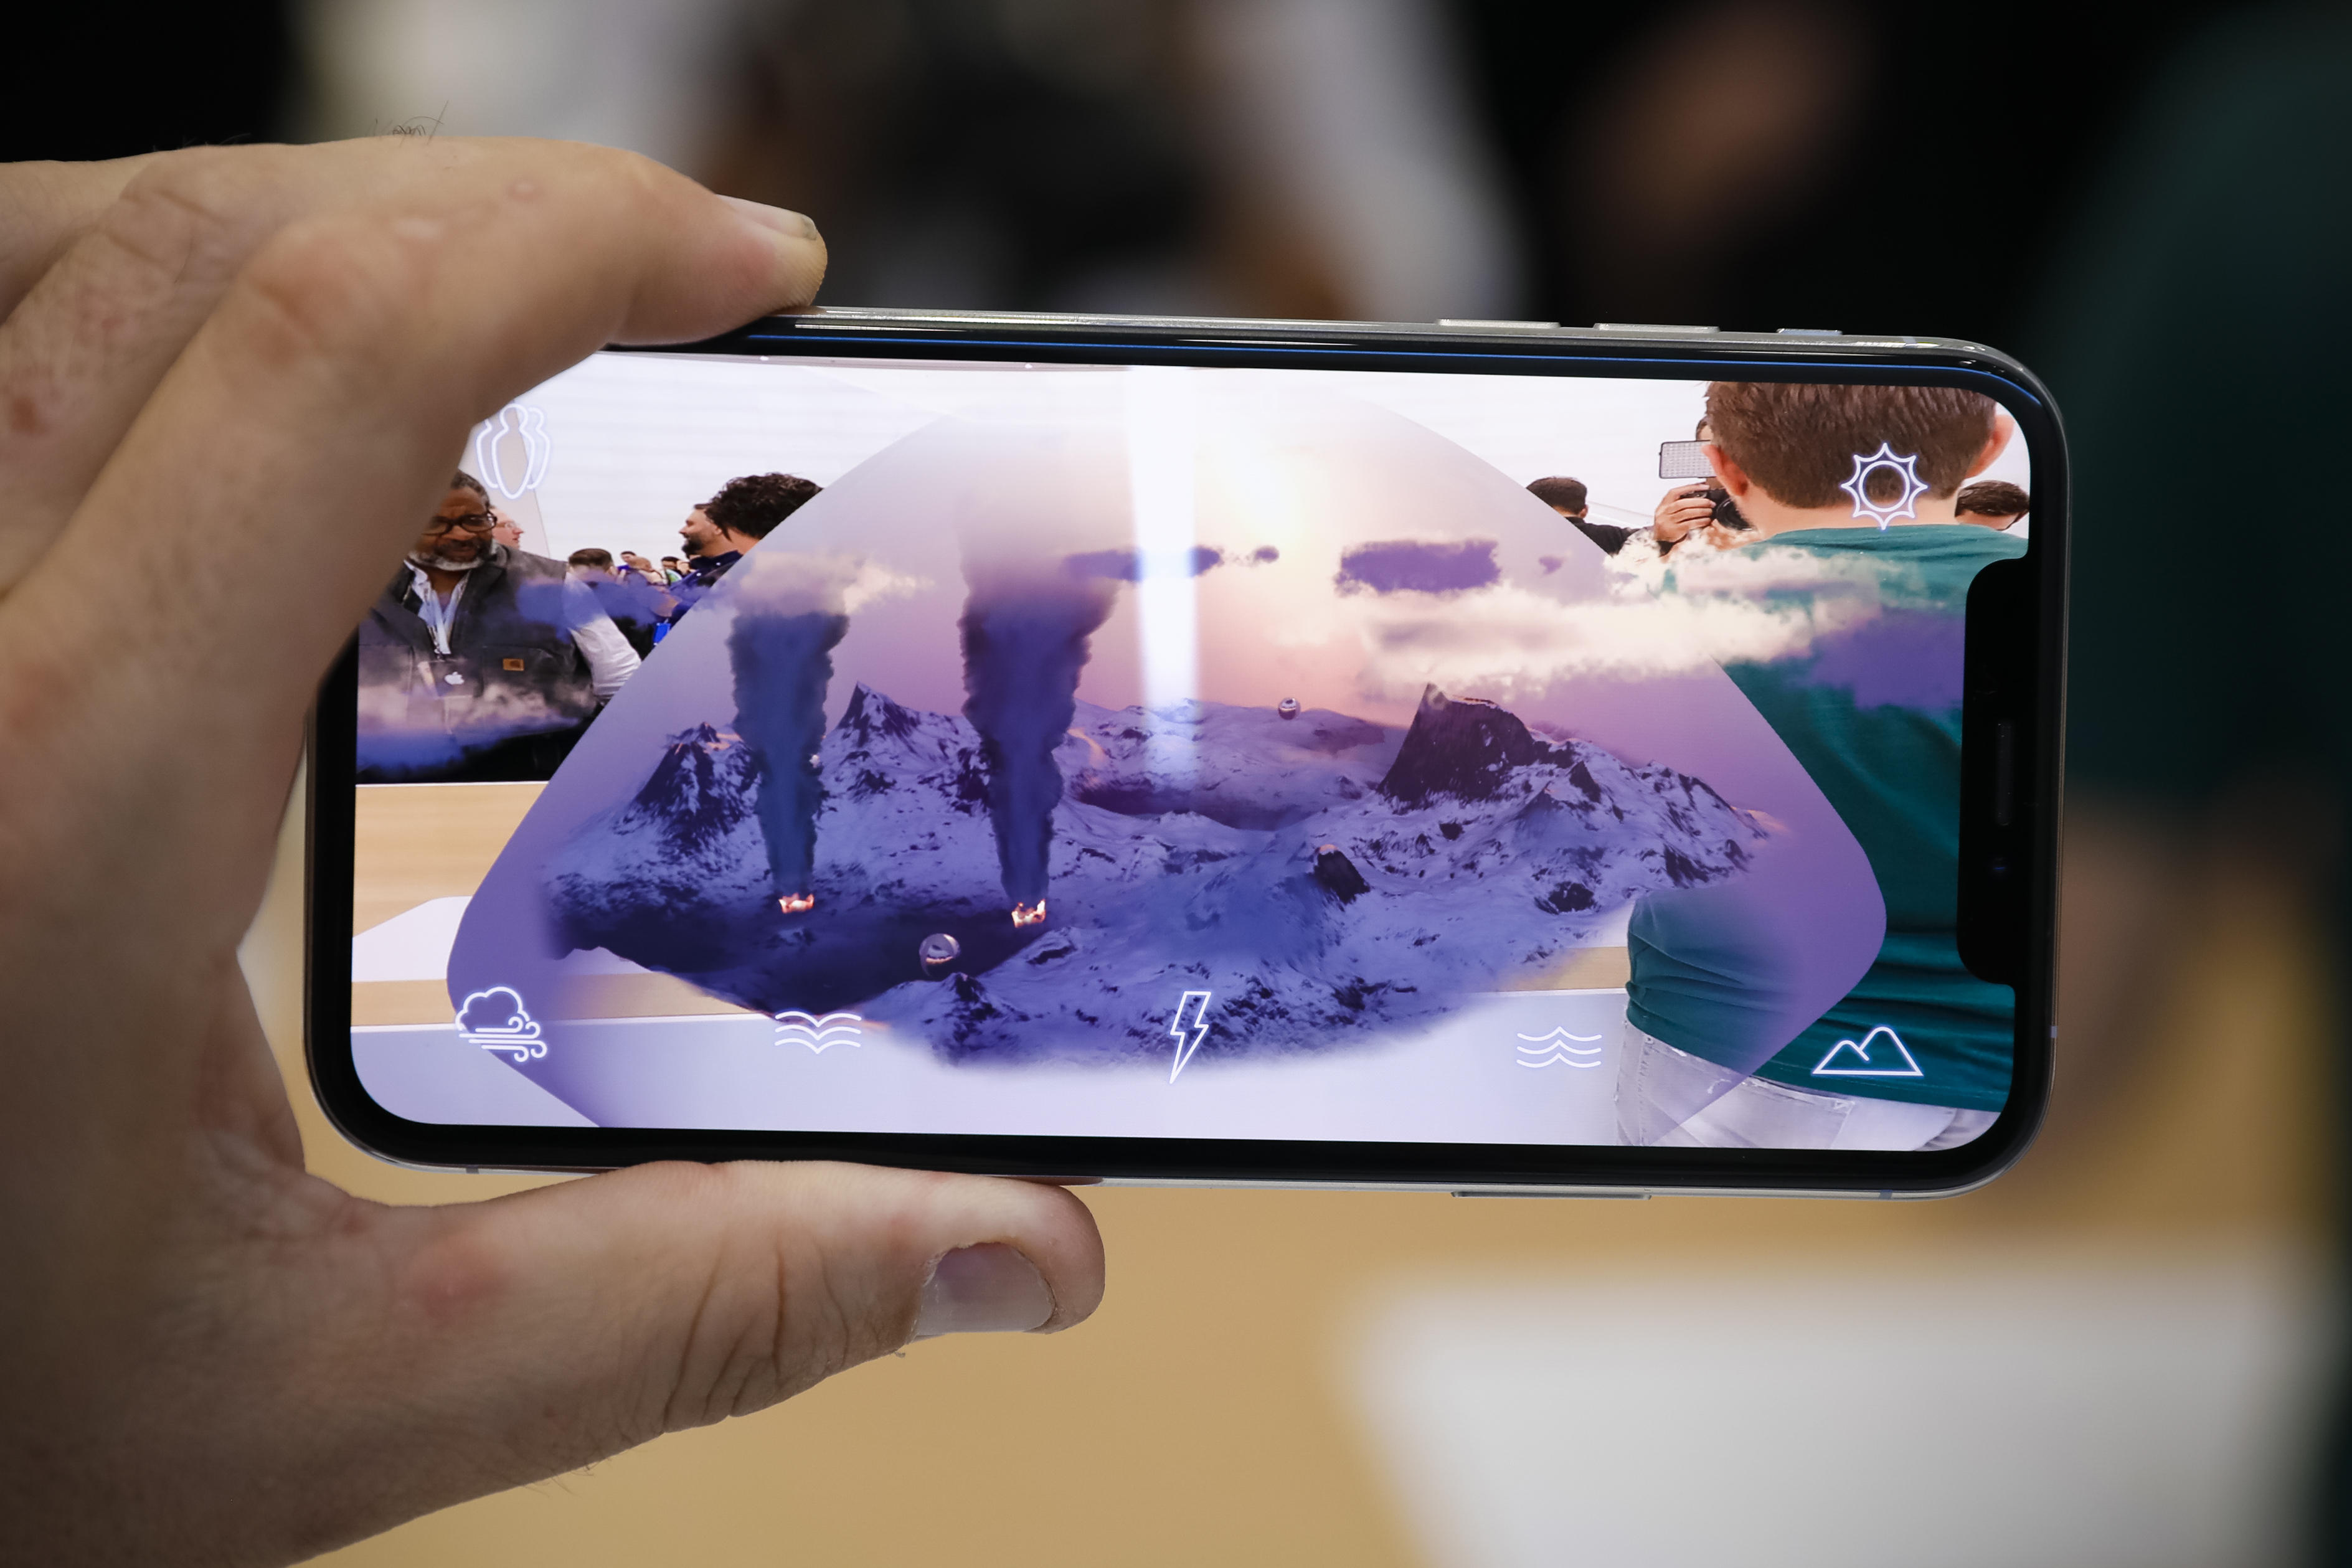 apple-event-091218-iphone-xs-iphone-xs-max-ar-augmented-reality-games-0863